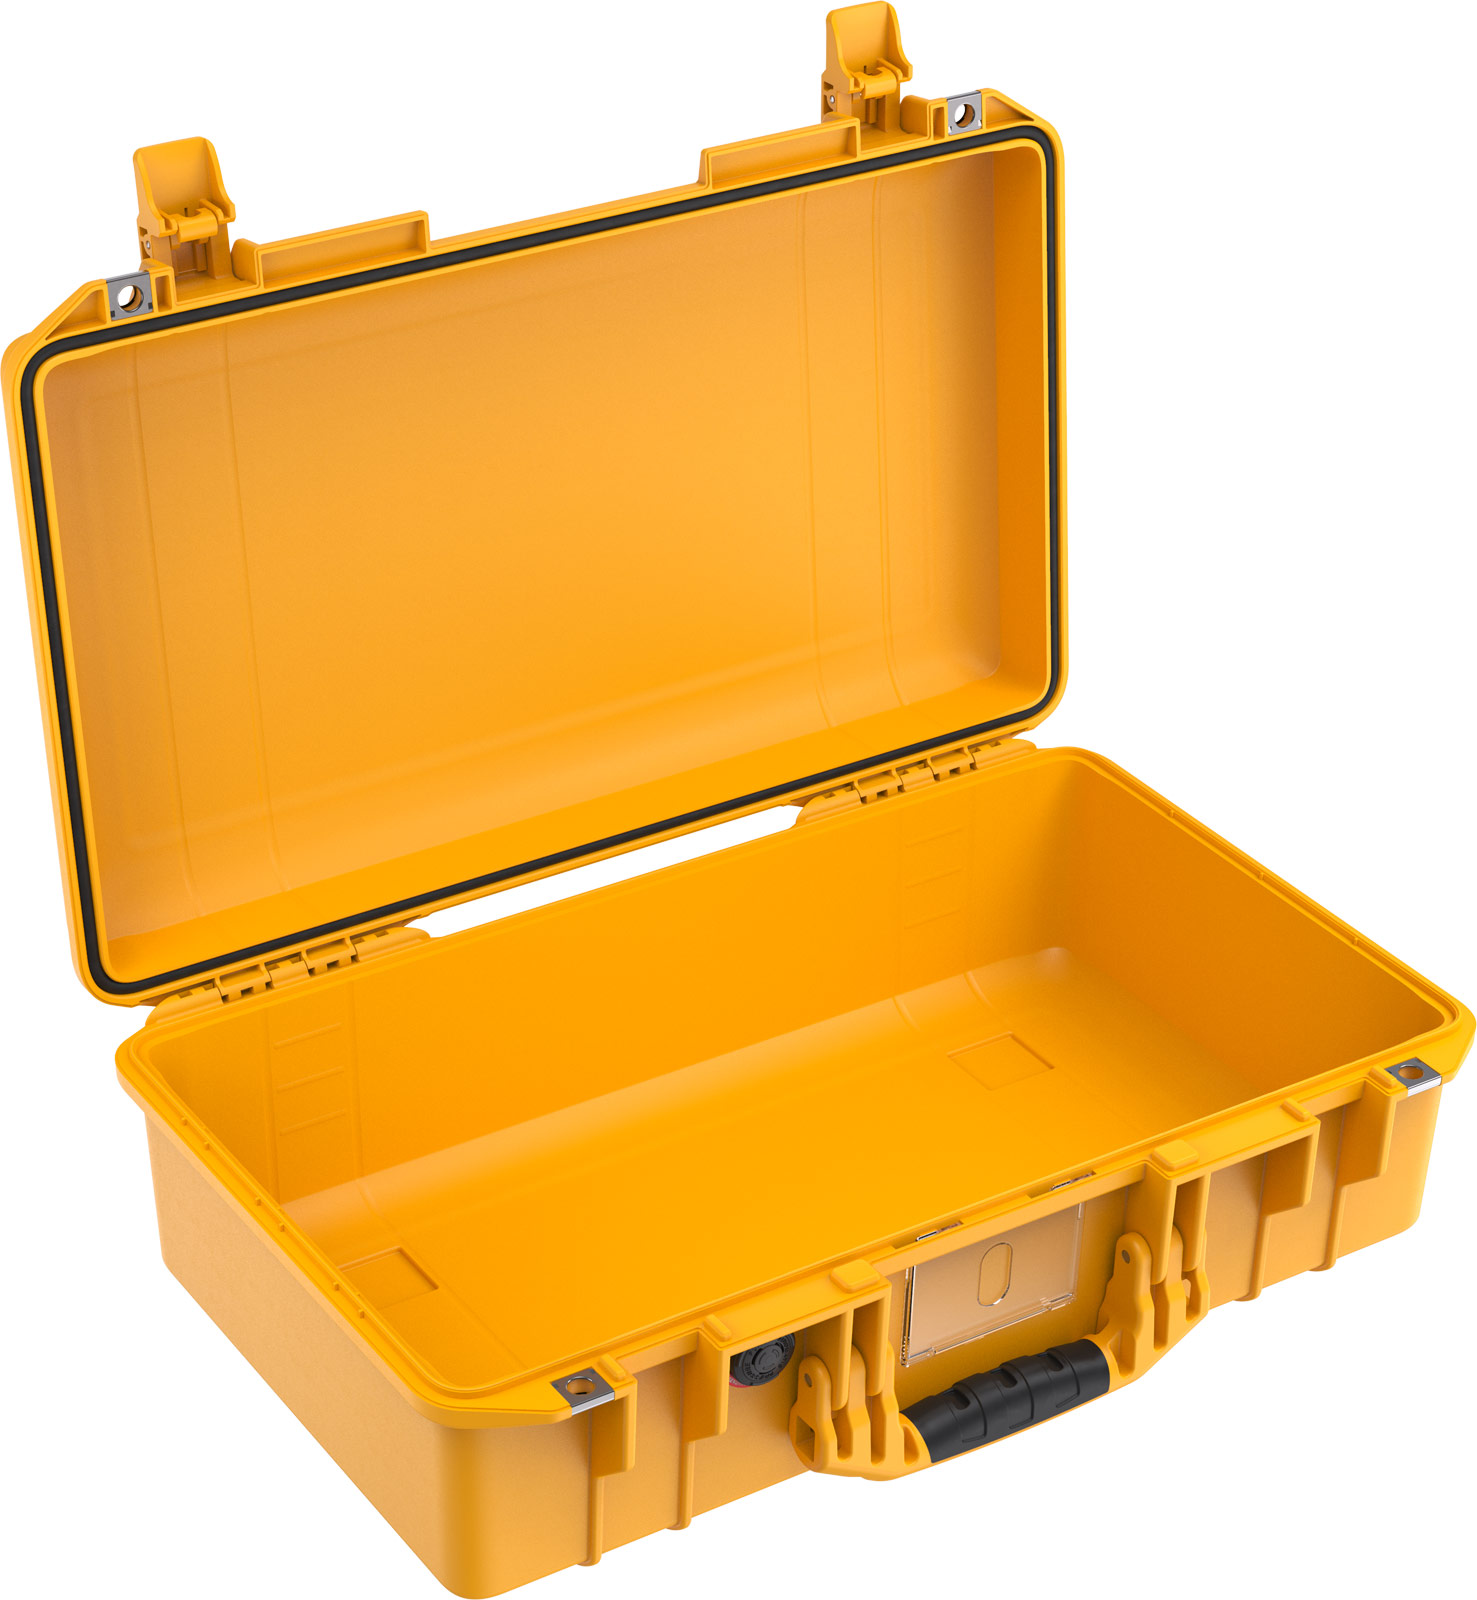 buy pelican air 1525 shop yellow carry on case